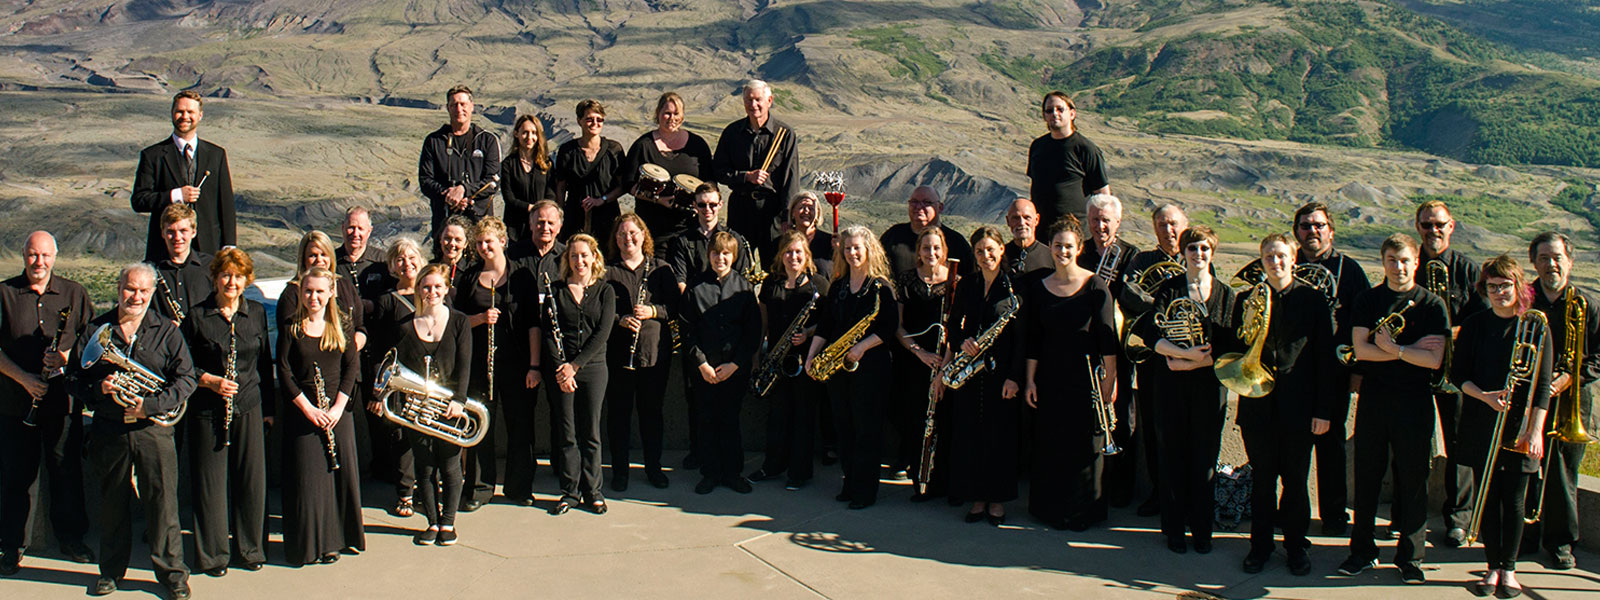 LCC Symphonic Band Performs at Mount St. Helens